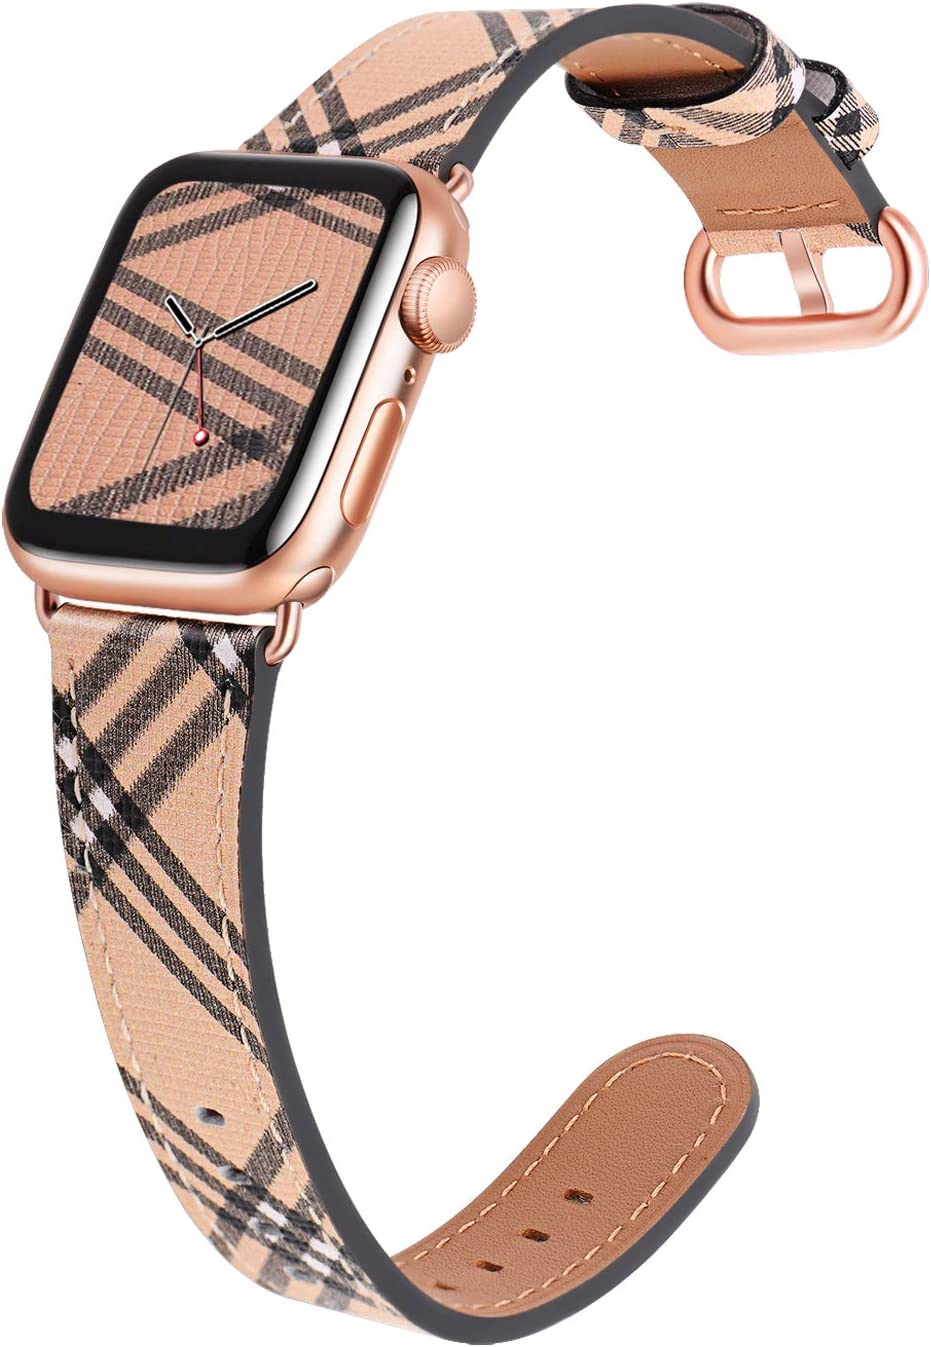 JSGJMY Leather Band Compatible with Apple Watch 38mm 40mm 42mm 44mm Women Men Strap for iWatch SE Series 6 5 4 3 2 1(Lattice+Match SE/6/5/4/3 Rose Gold, 38mm/40mm S/M)